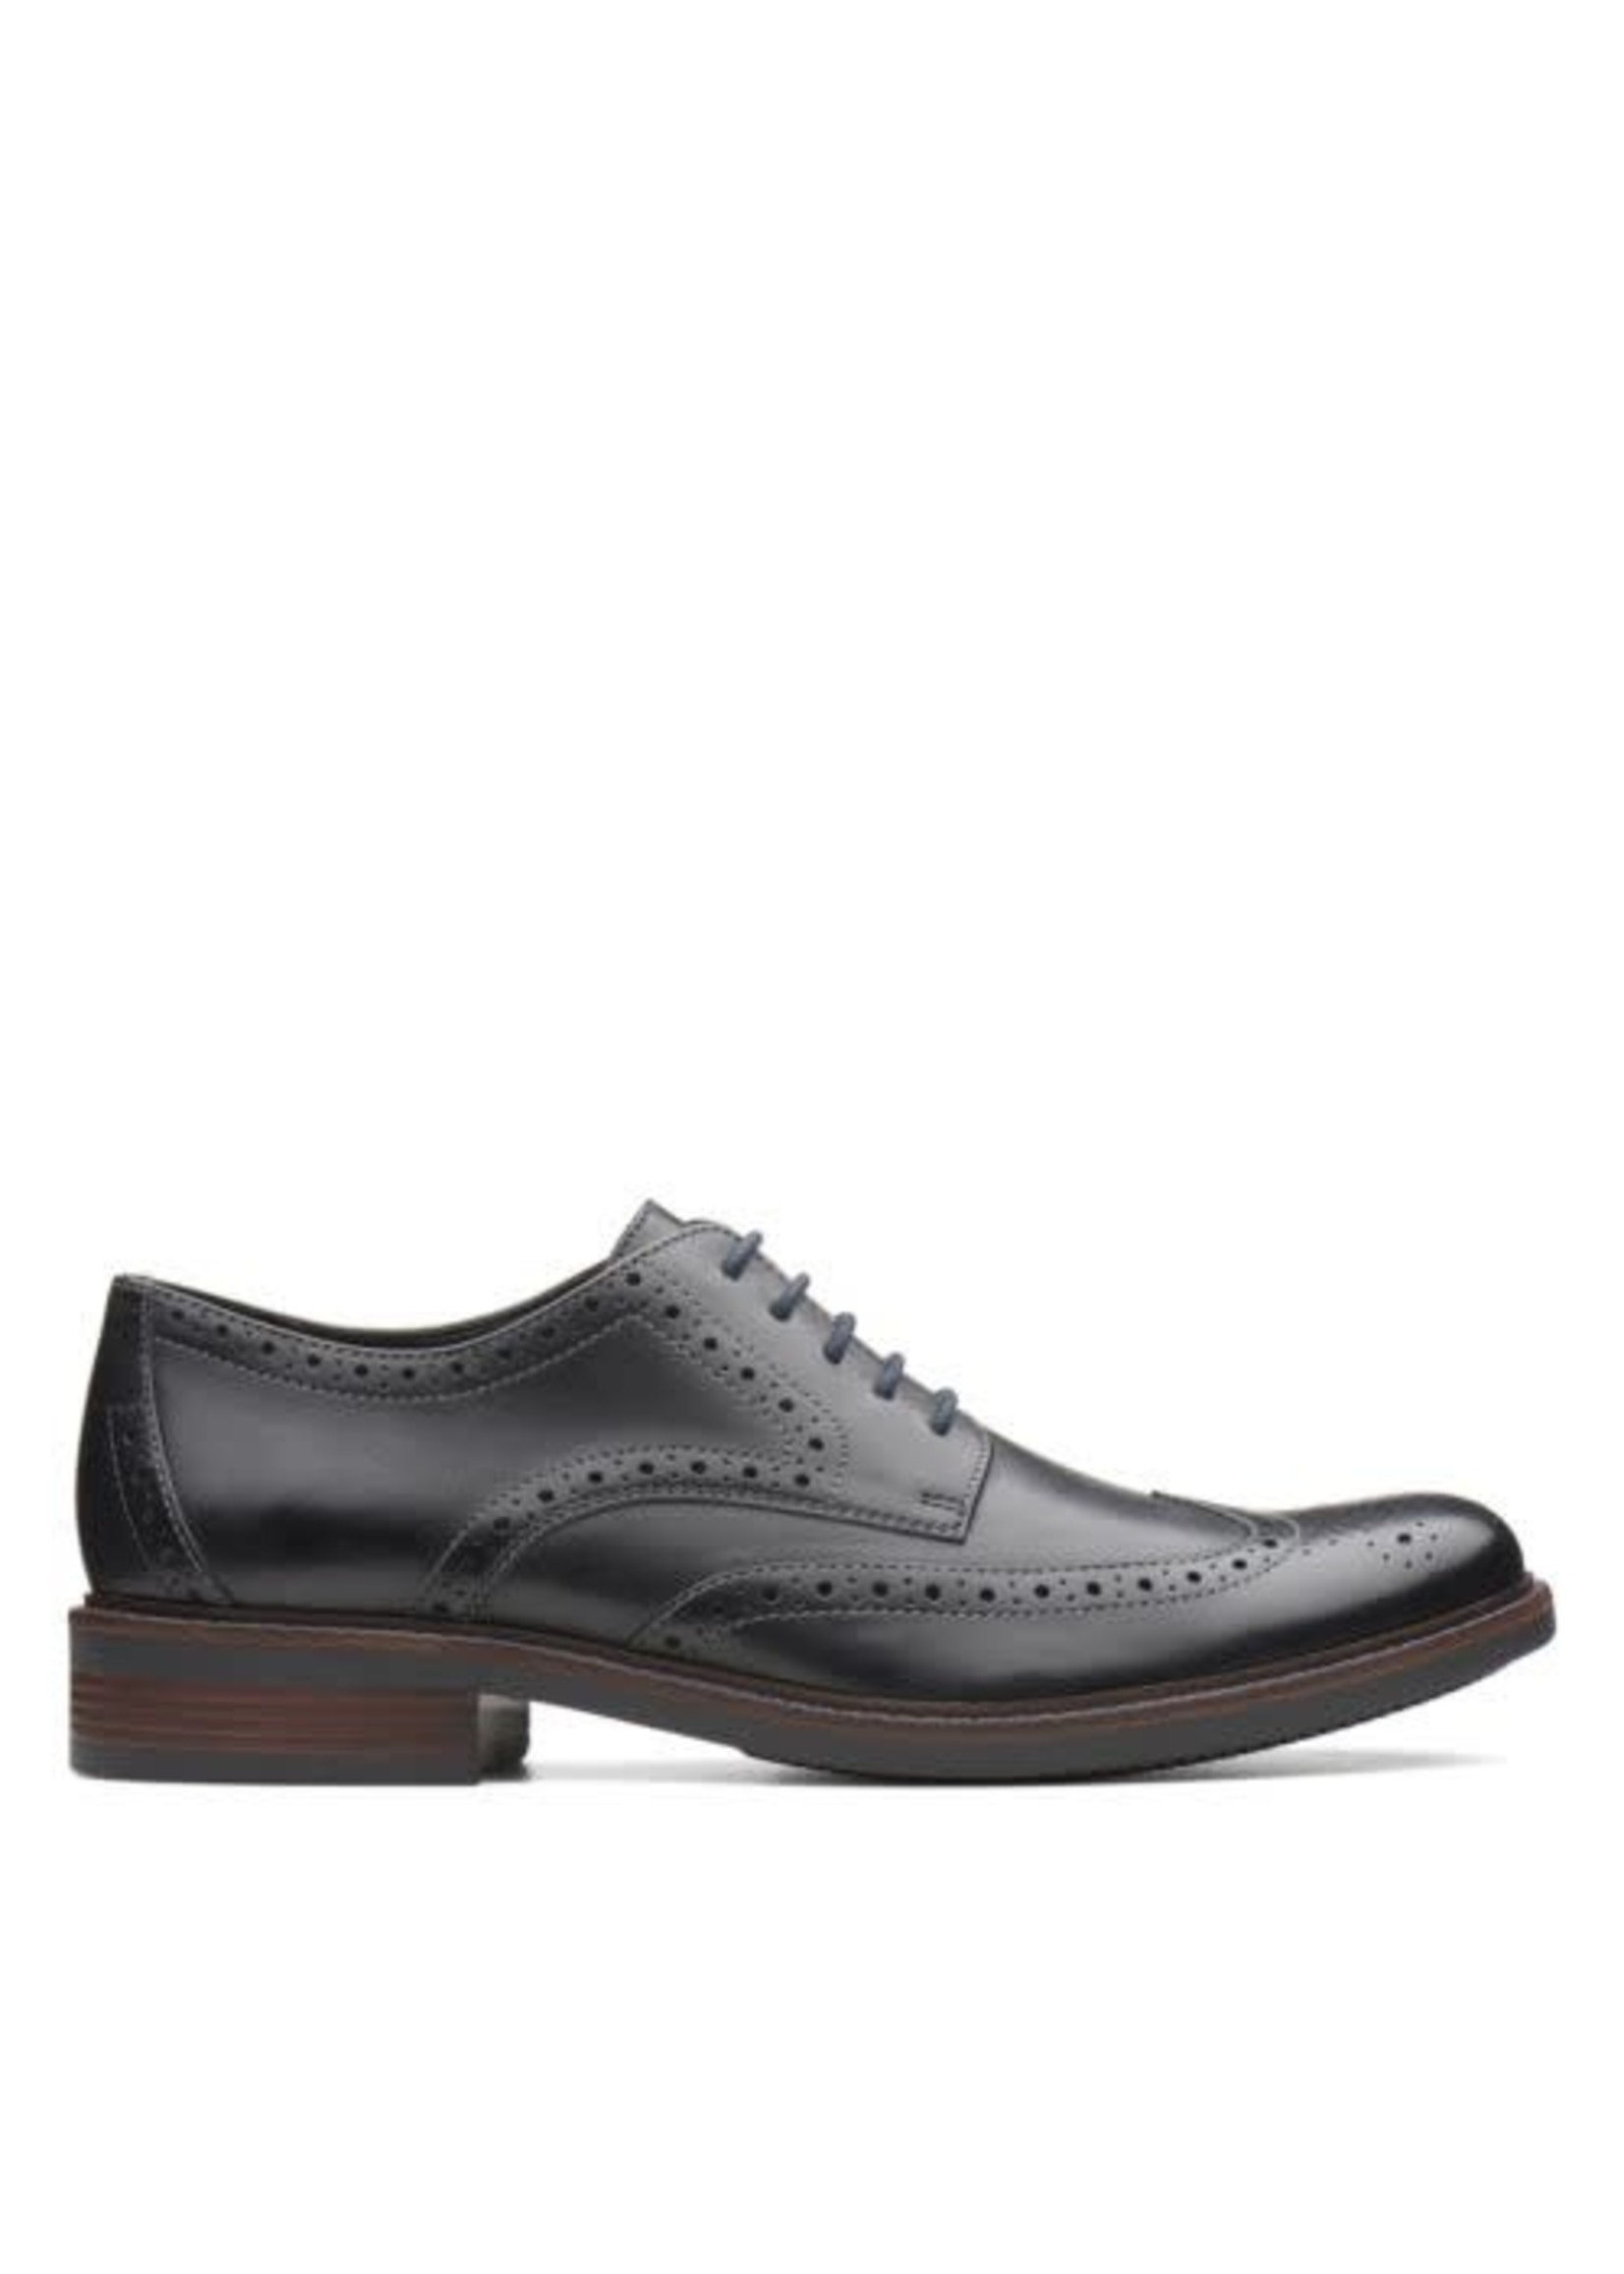 CLARKS CLARKS- MAXTON WING- BLACK LEATHER